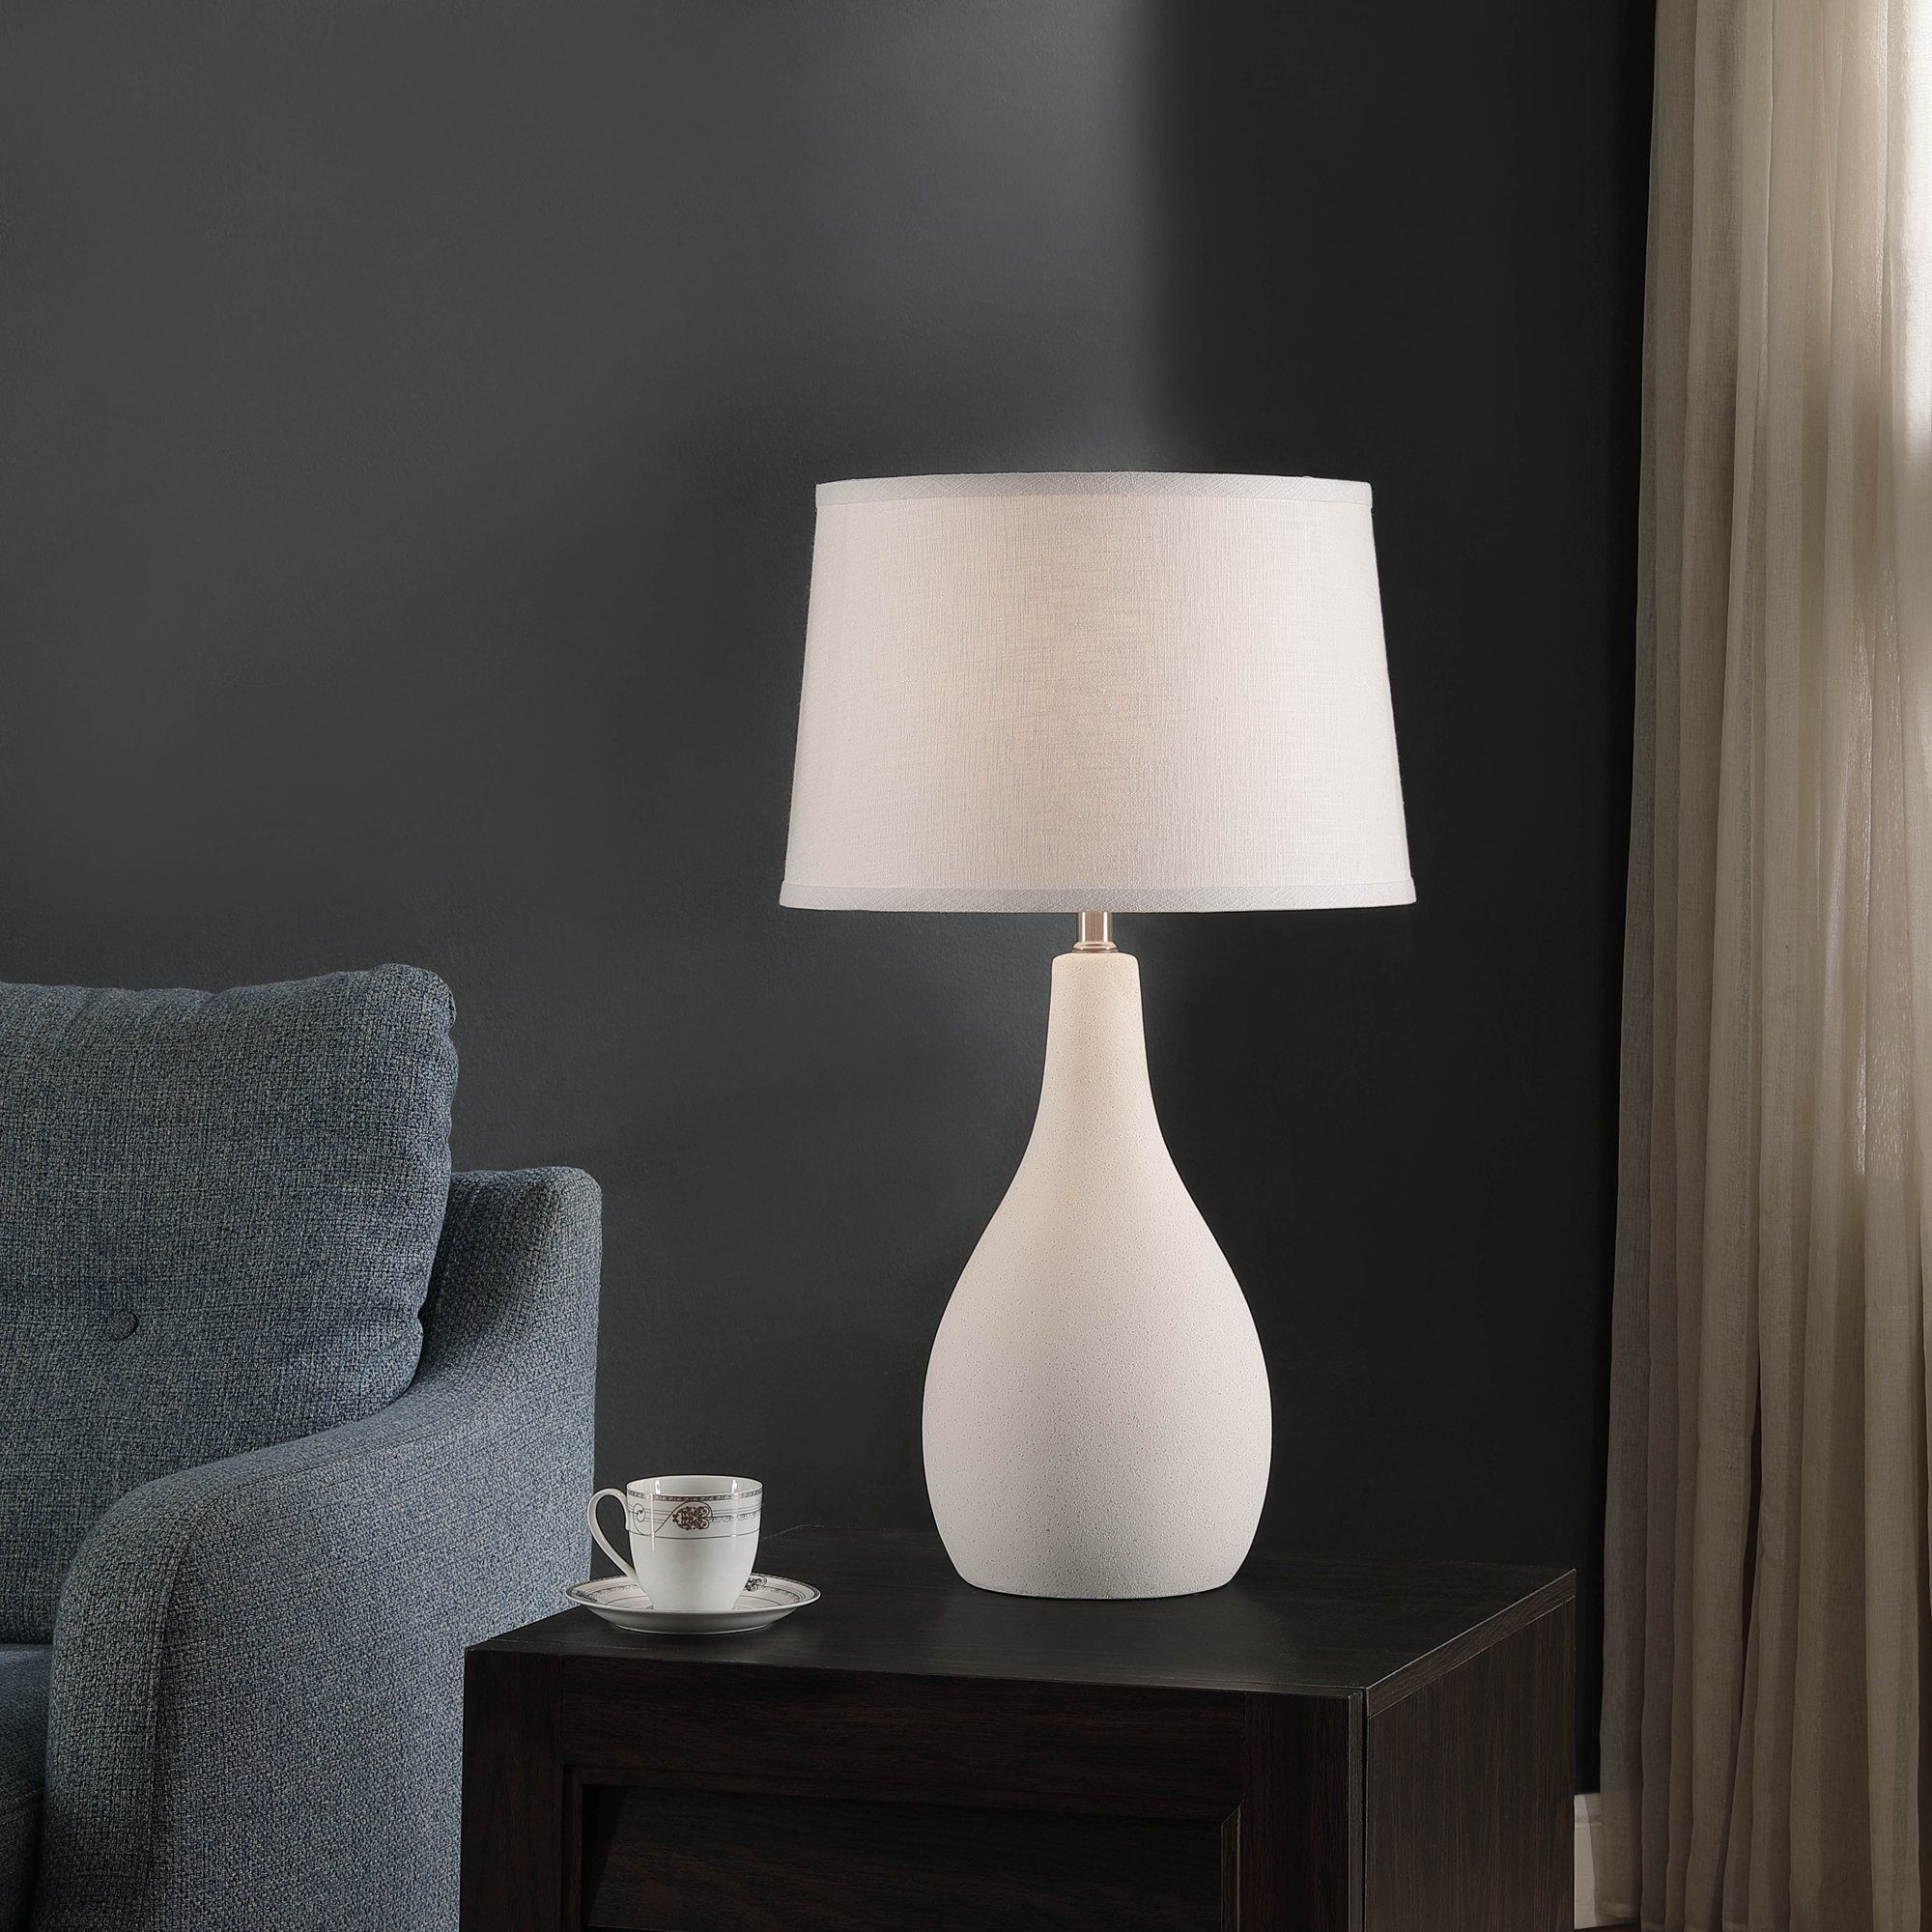 5339ee2bd018159a67810c6f10620532 - Better Homes & Gardens Ceramic Table Lamp